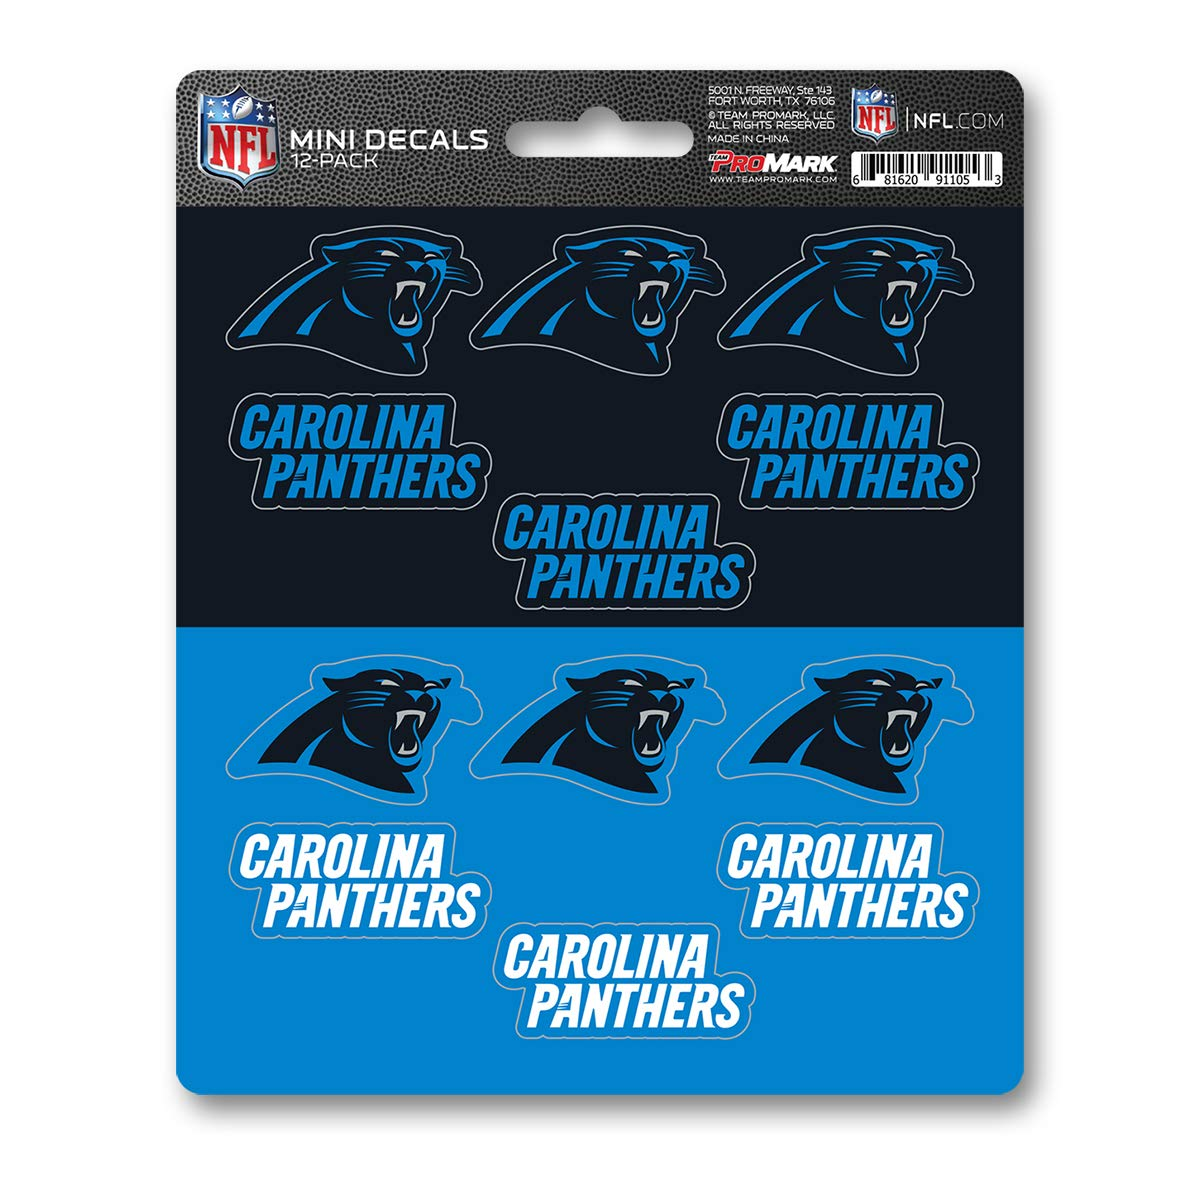 One Size NFL Carolina Panthers DecalDecal Set Mini 12 Pack Team Colors